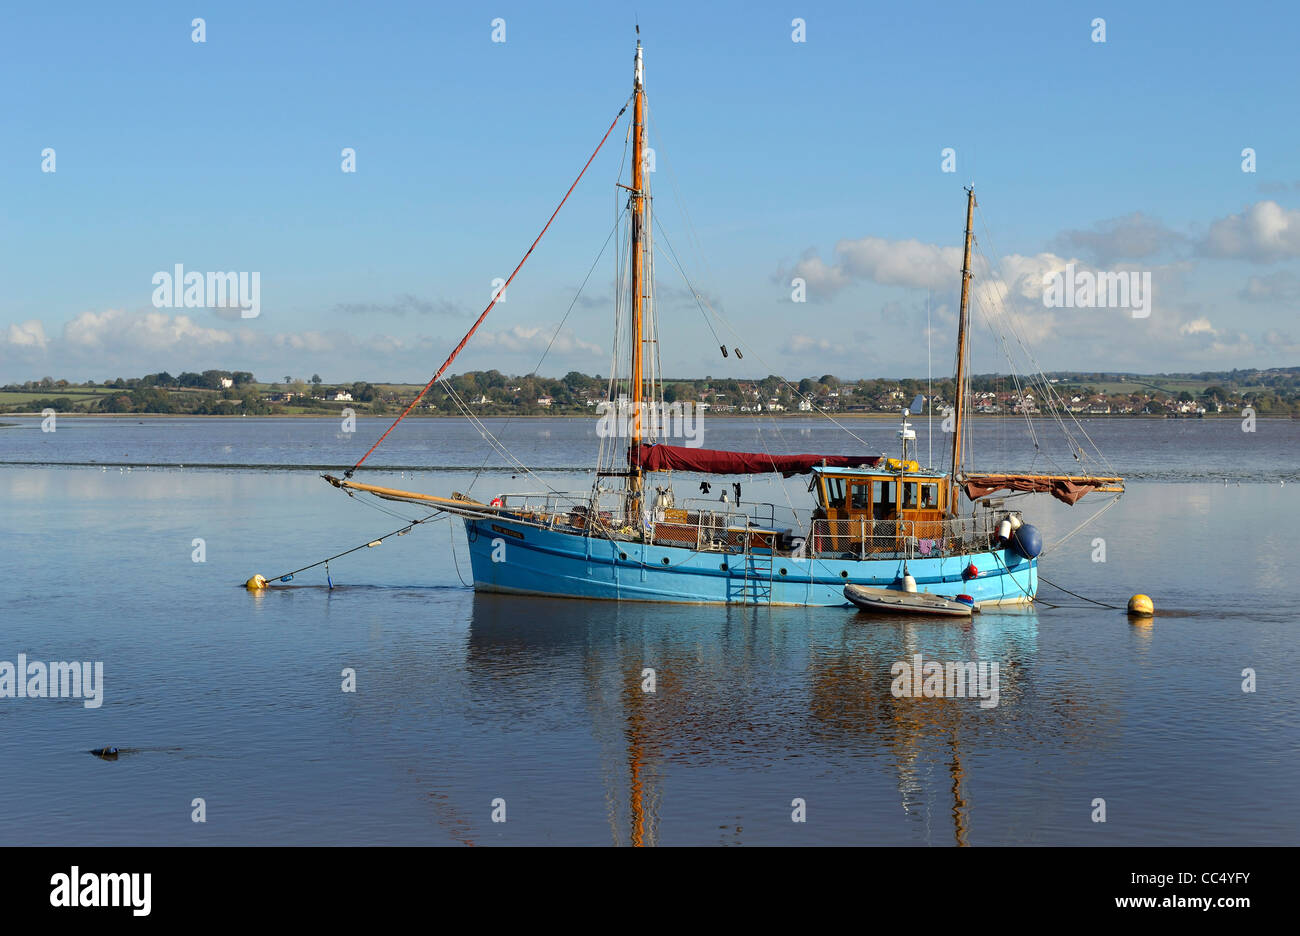 Classic twin masted sailing ship moored on the tidal River Exe below Topsham near Exeter below the Exeter ship canal - Stock Image